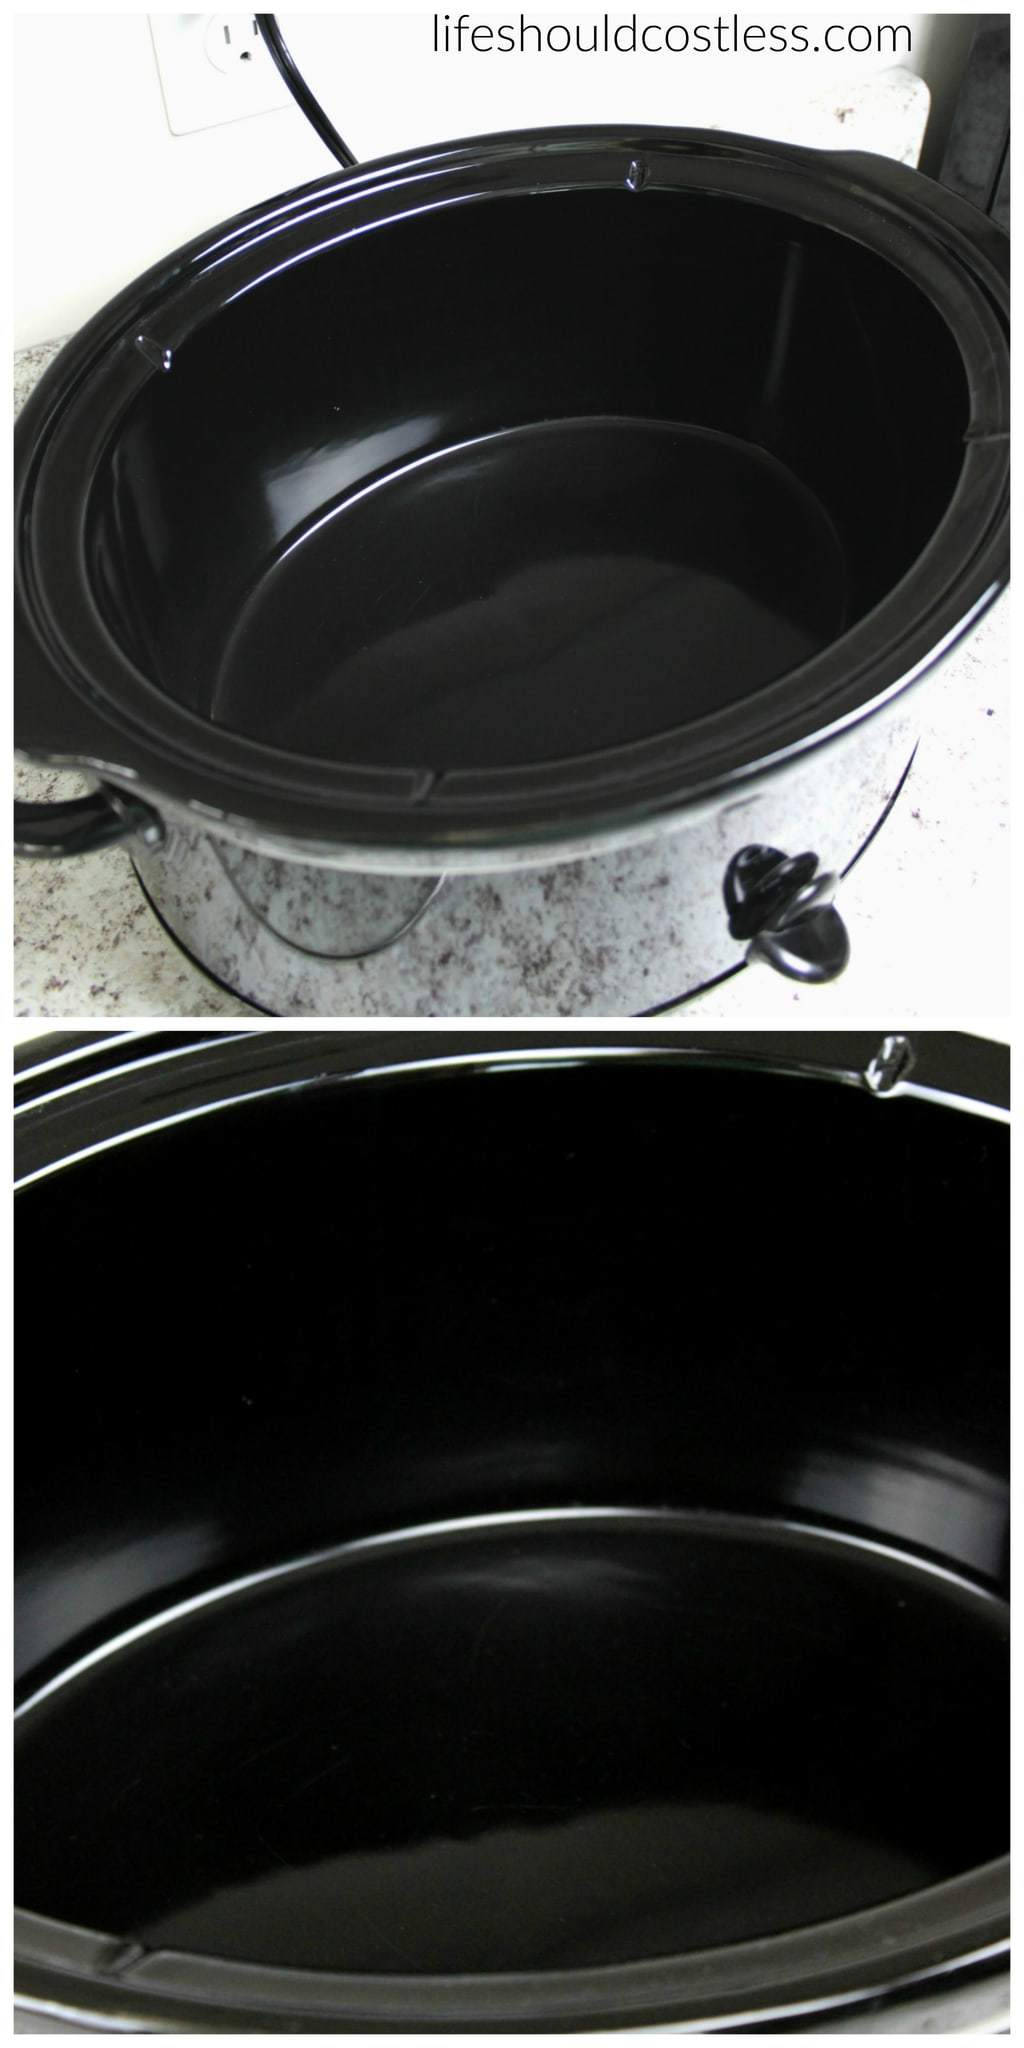 How to make your slow cooker clean itself! Ring of crud be gone with less than 30 seconds of scrubbing. After